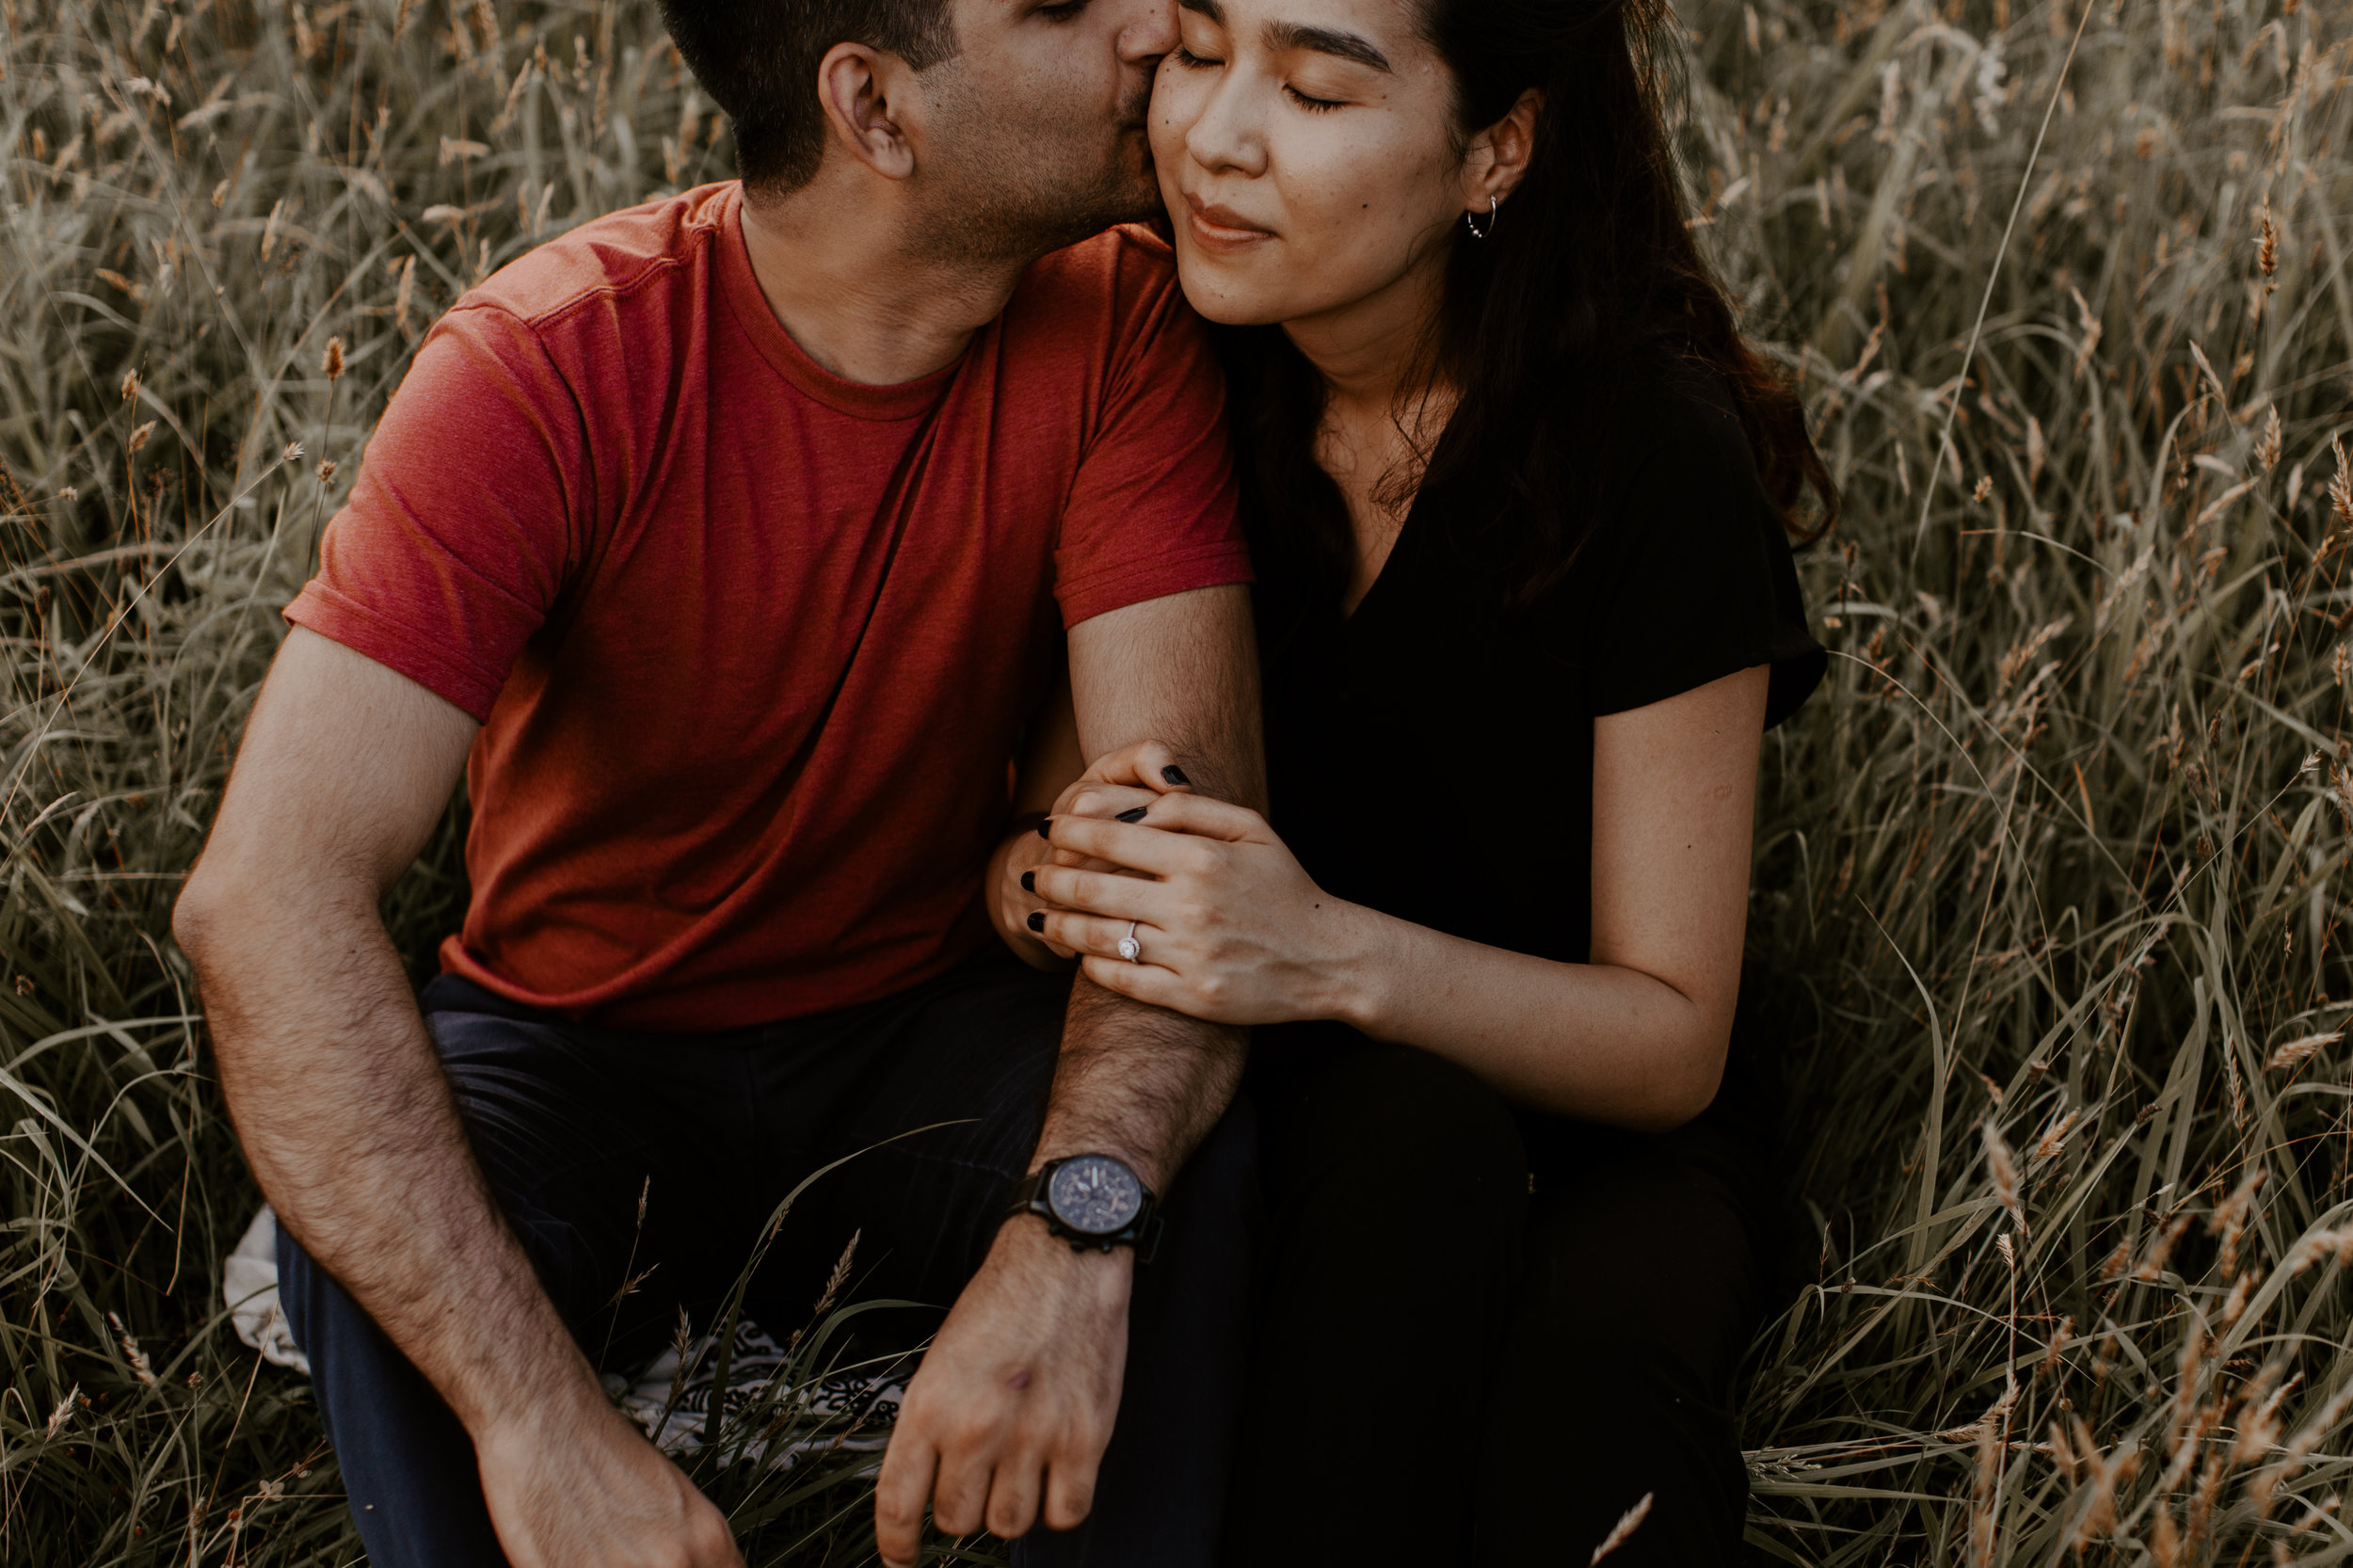 Golden Tone Engagement Session at Long Hunter State Park in Tennessee